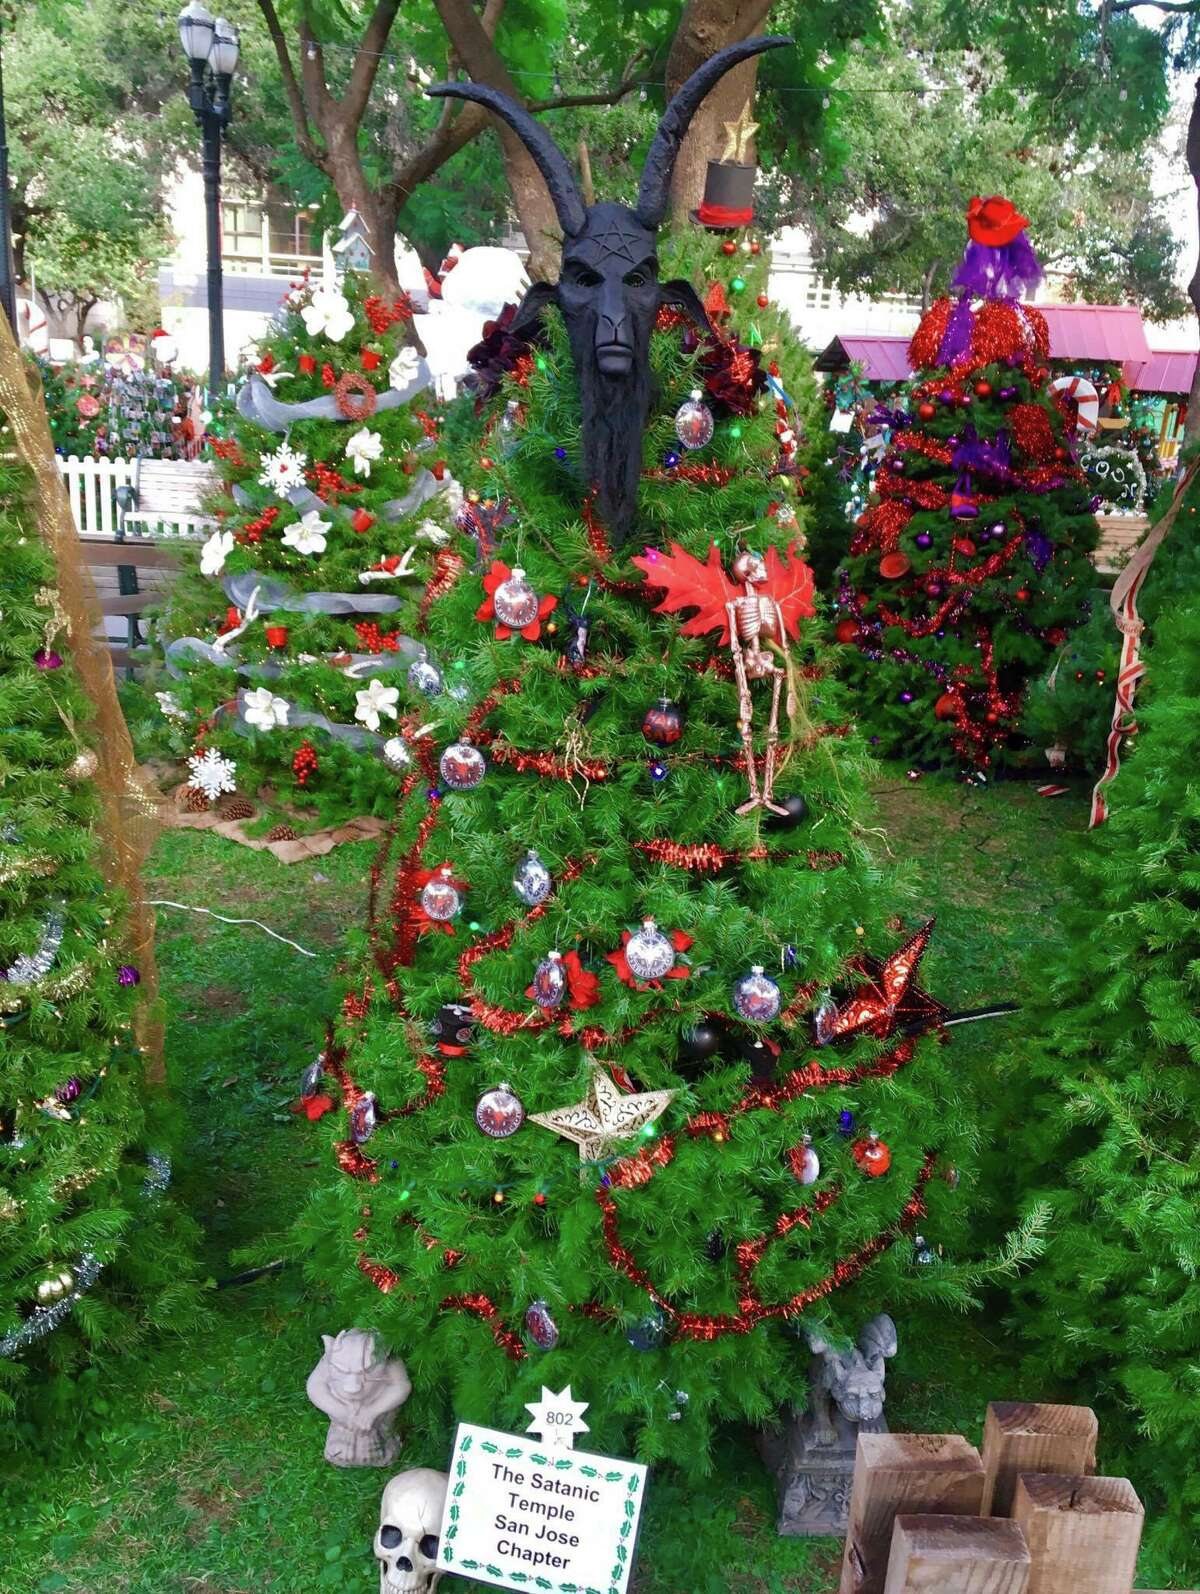 A tree decorated by the San Jose chapter of the Satanic Temple for Christmas in the Park had its goat mask tree topper stolen Saturday.